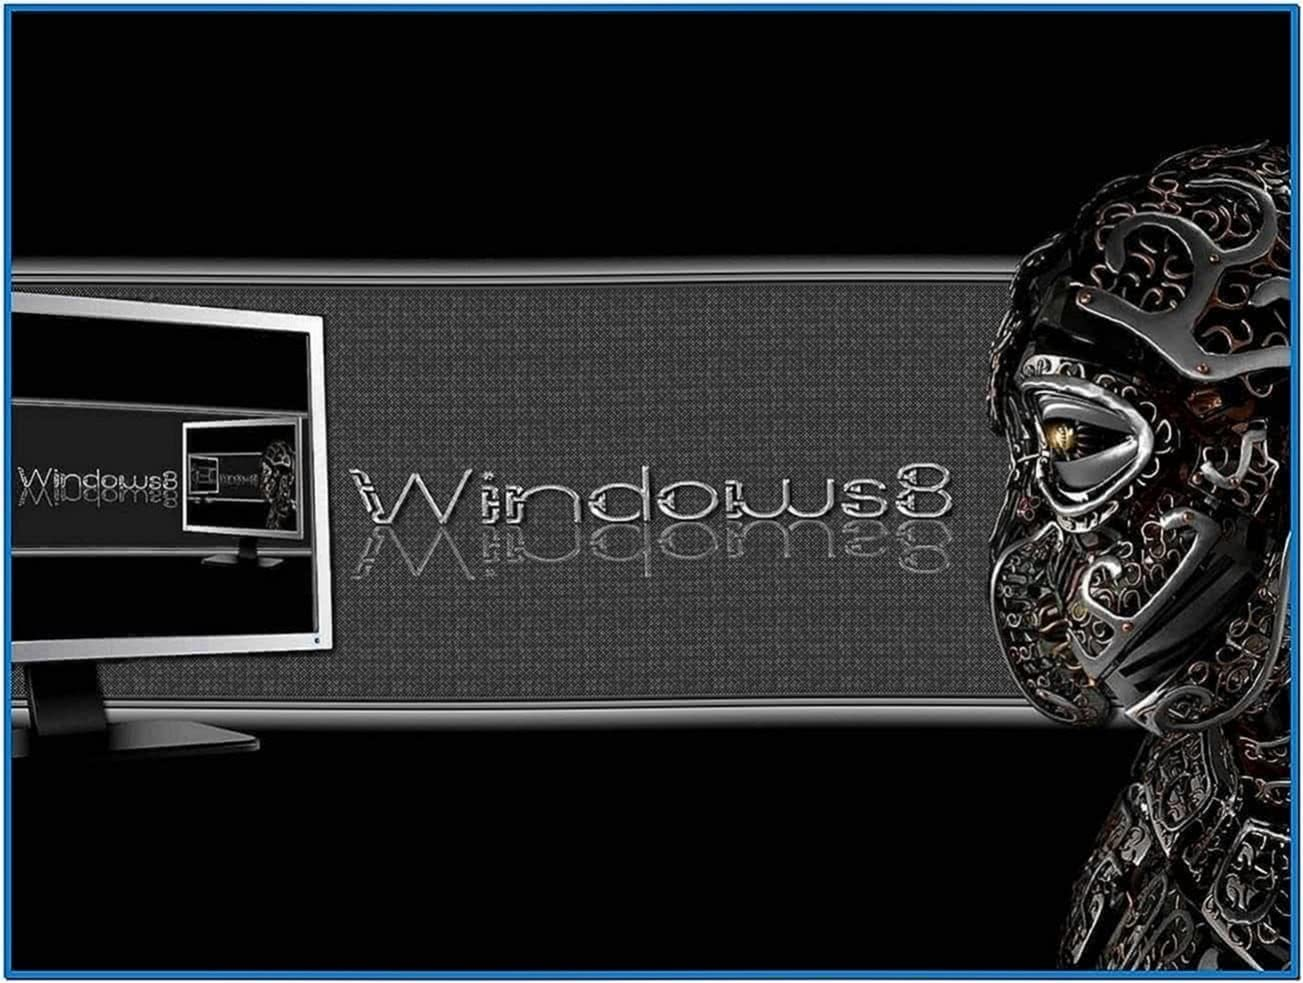 Windows 8 Screensaver Black